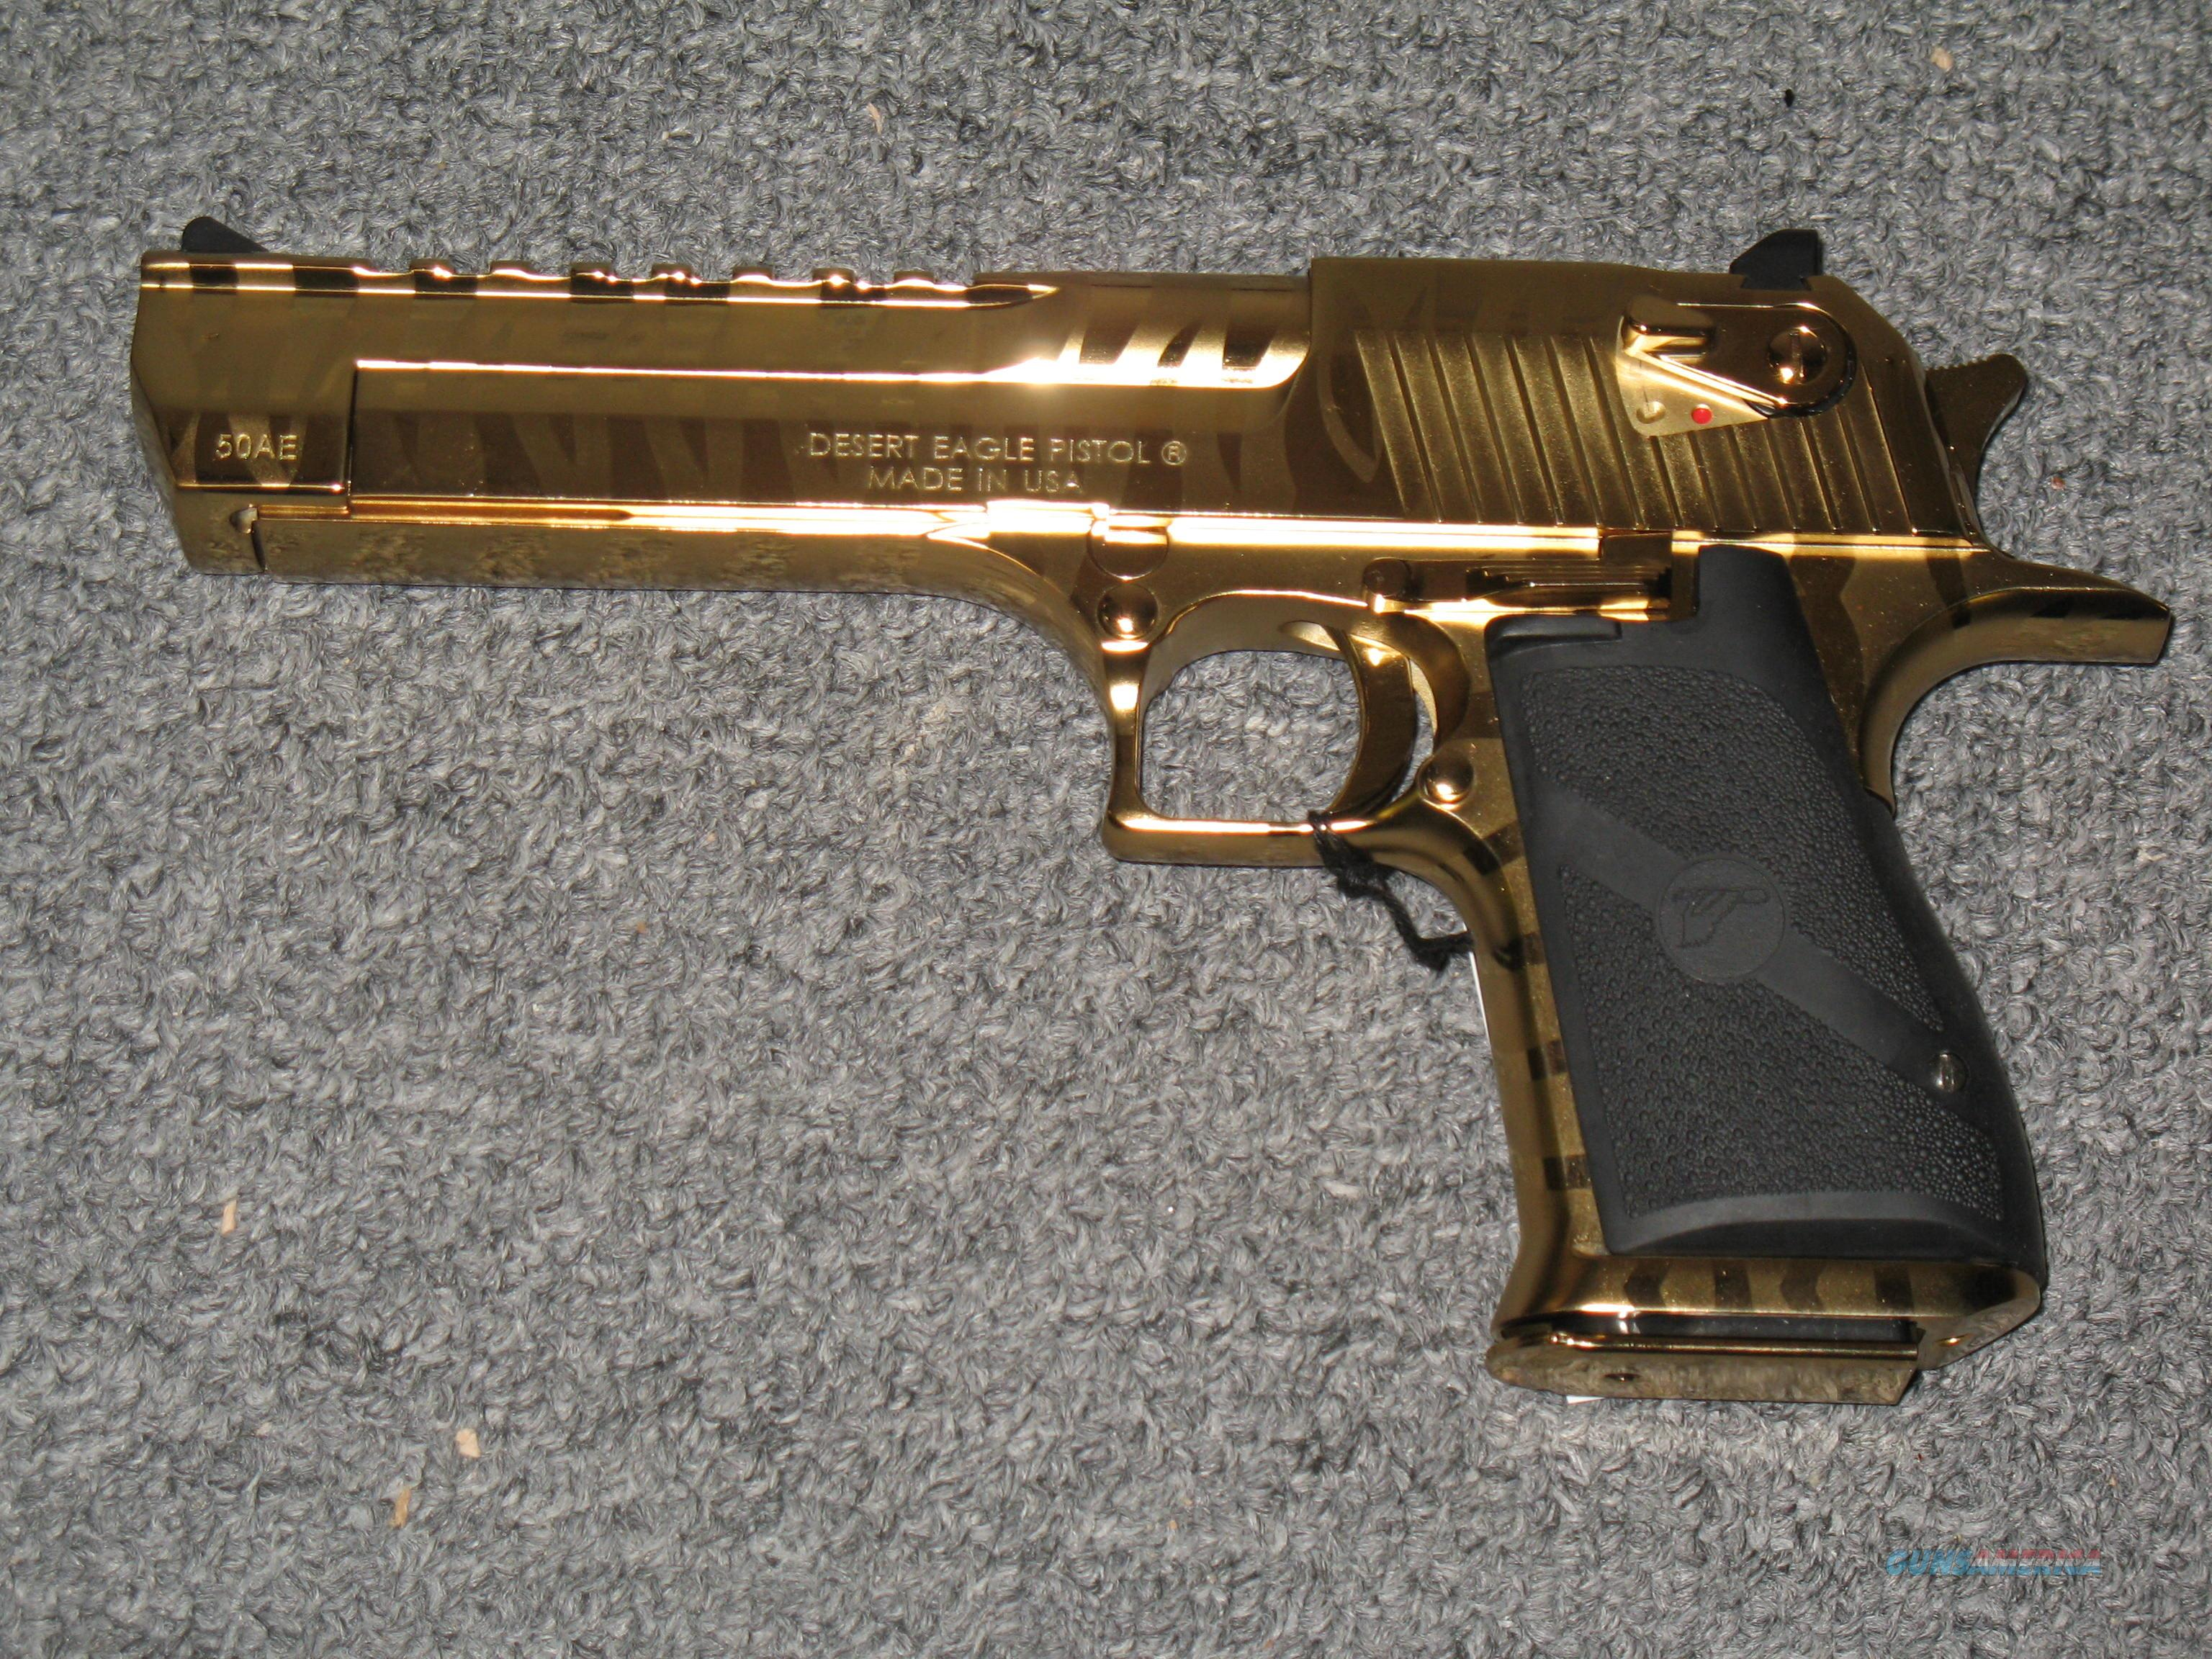 desert eagle 50 ae titanium gold bengal tiger for sale. Black Bedroom Furniture Sets. Home Design Ideas